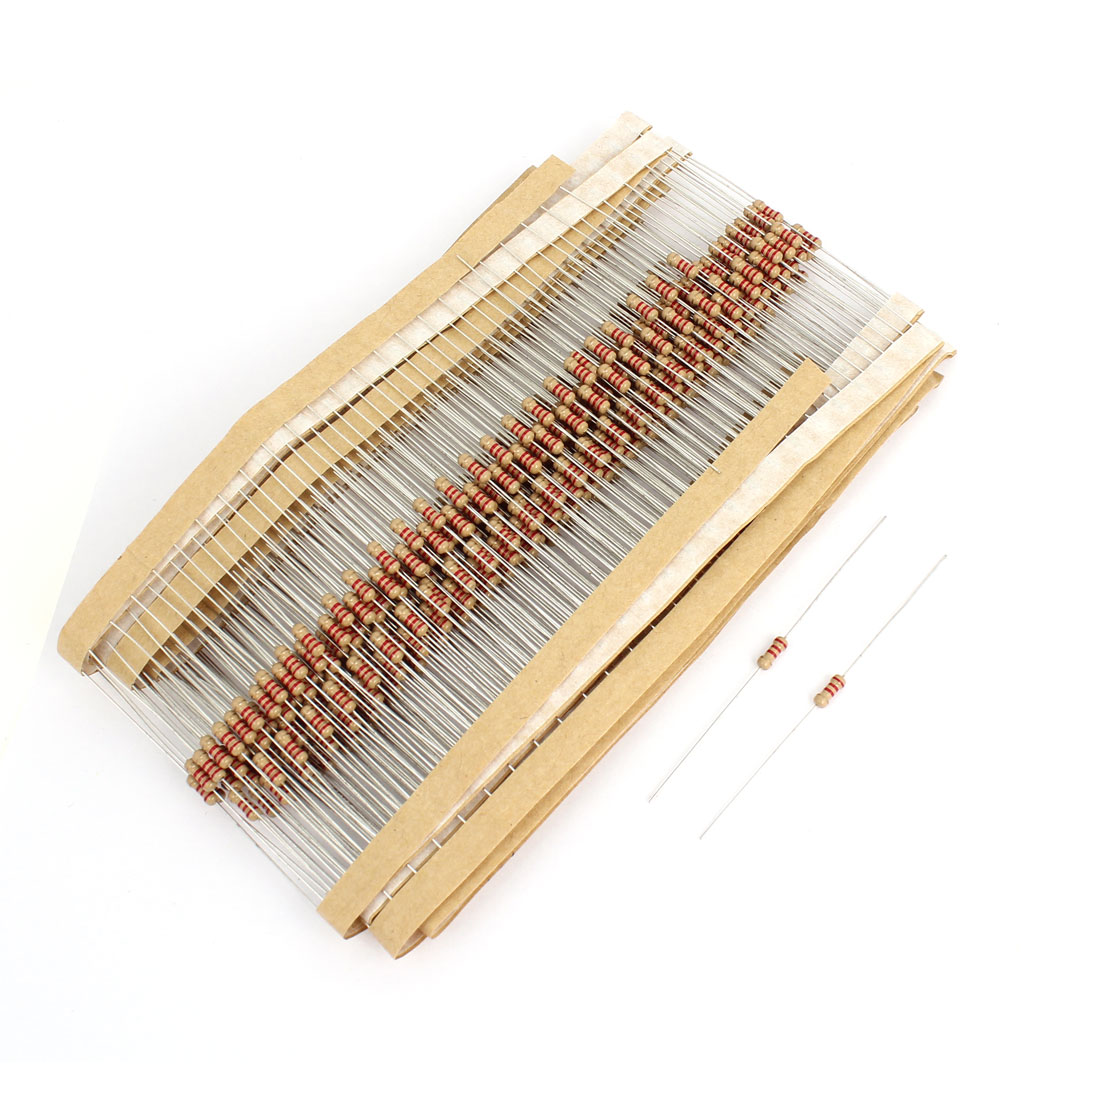 400Pcs 1/4W 0.25W 5% Tolerance 2.2K Ohm Through Hole Axial Lead Carbon Film Resistor